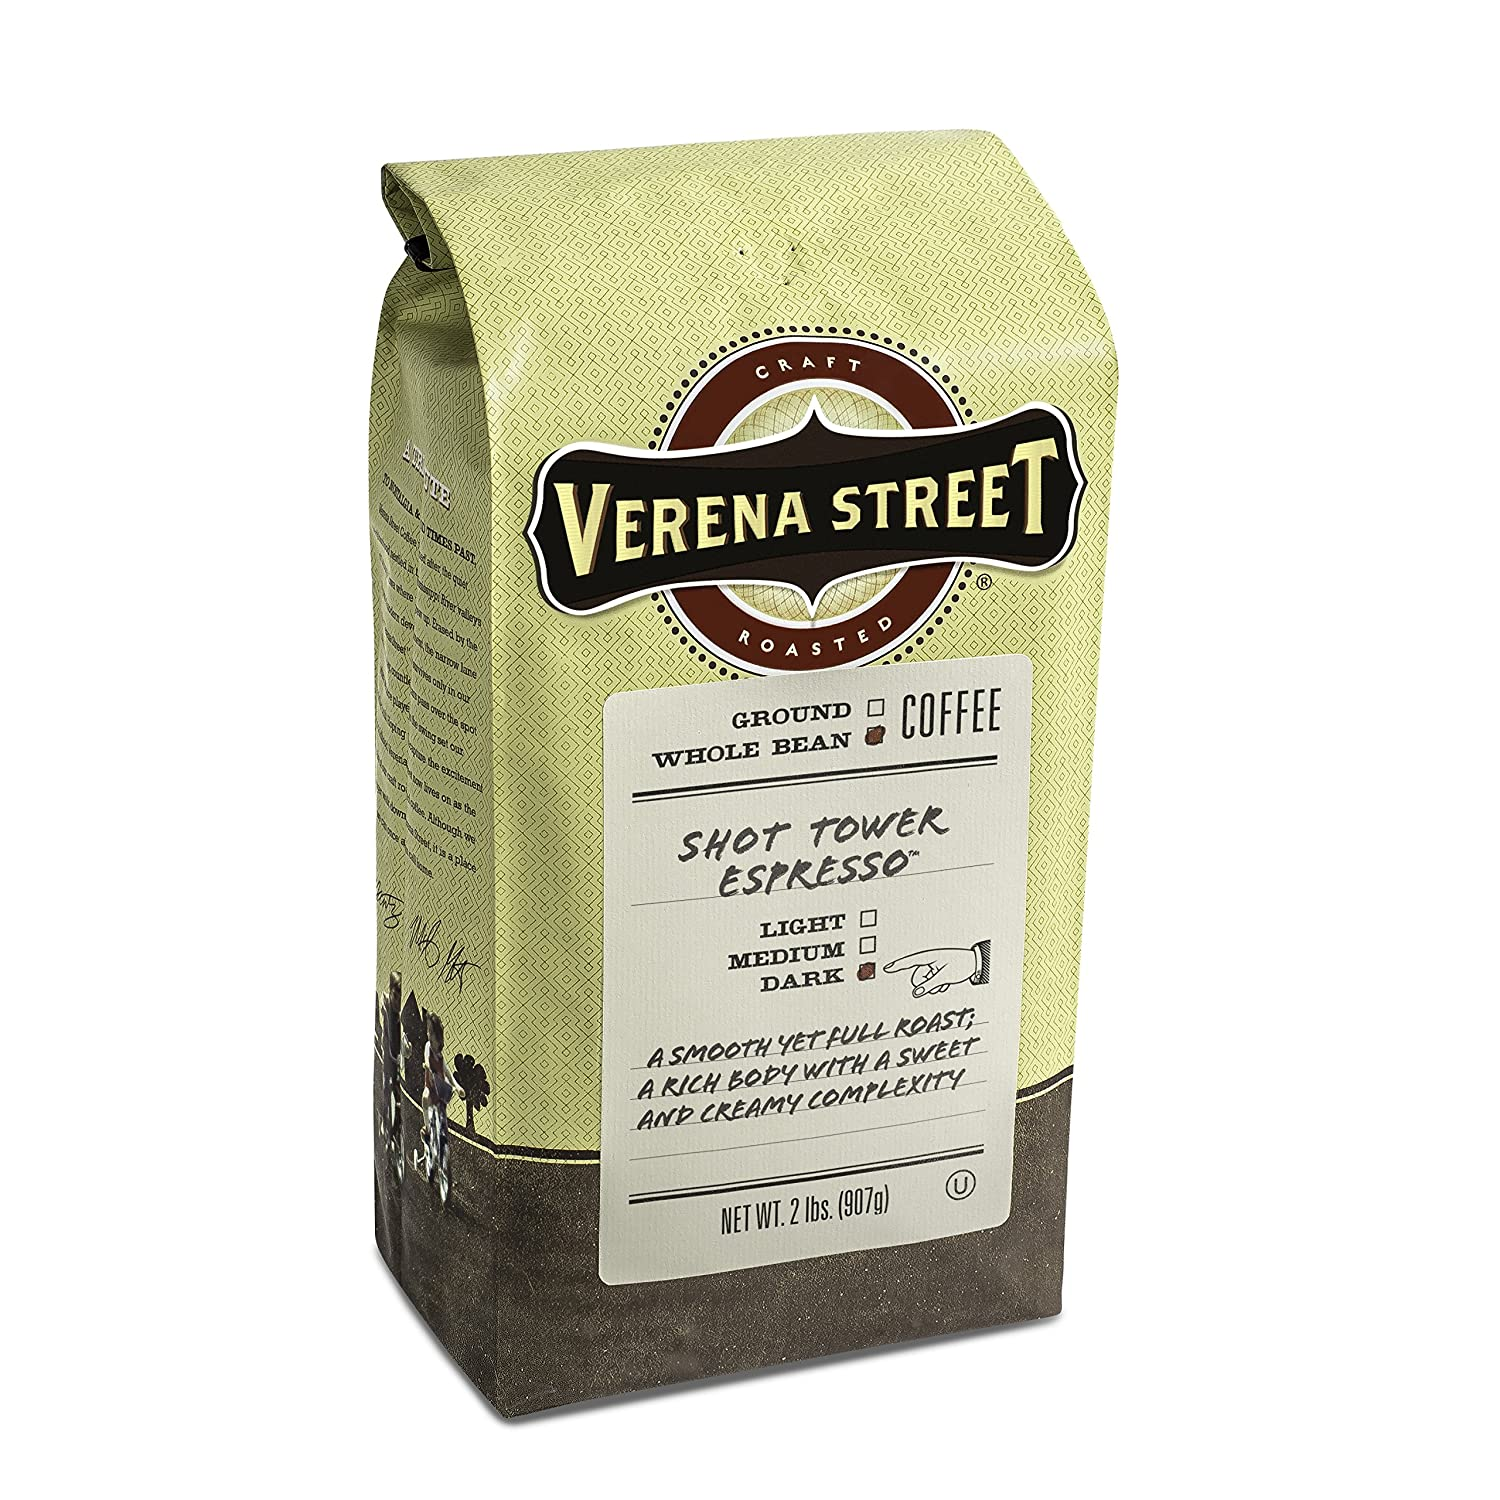 Verena Street Review